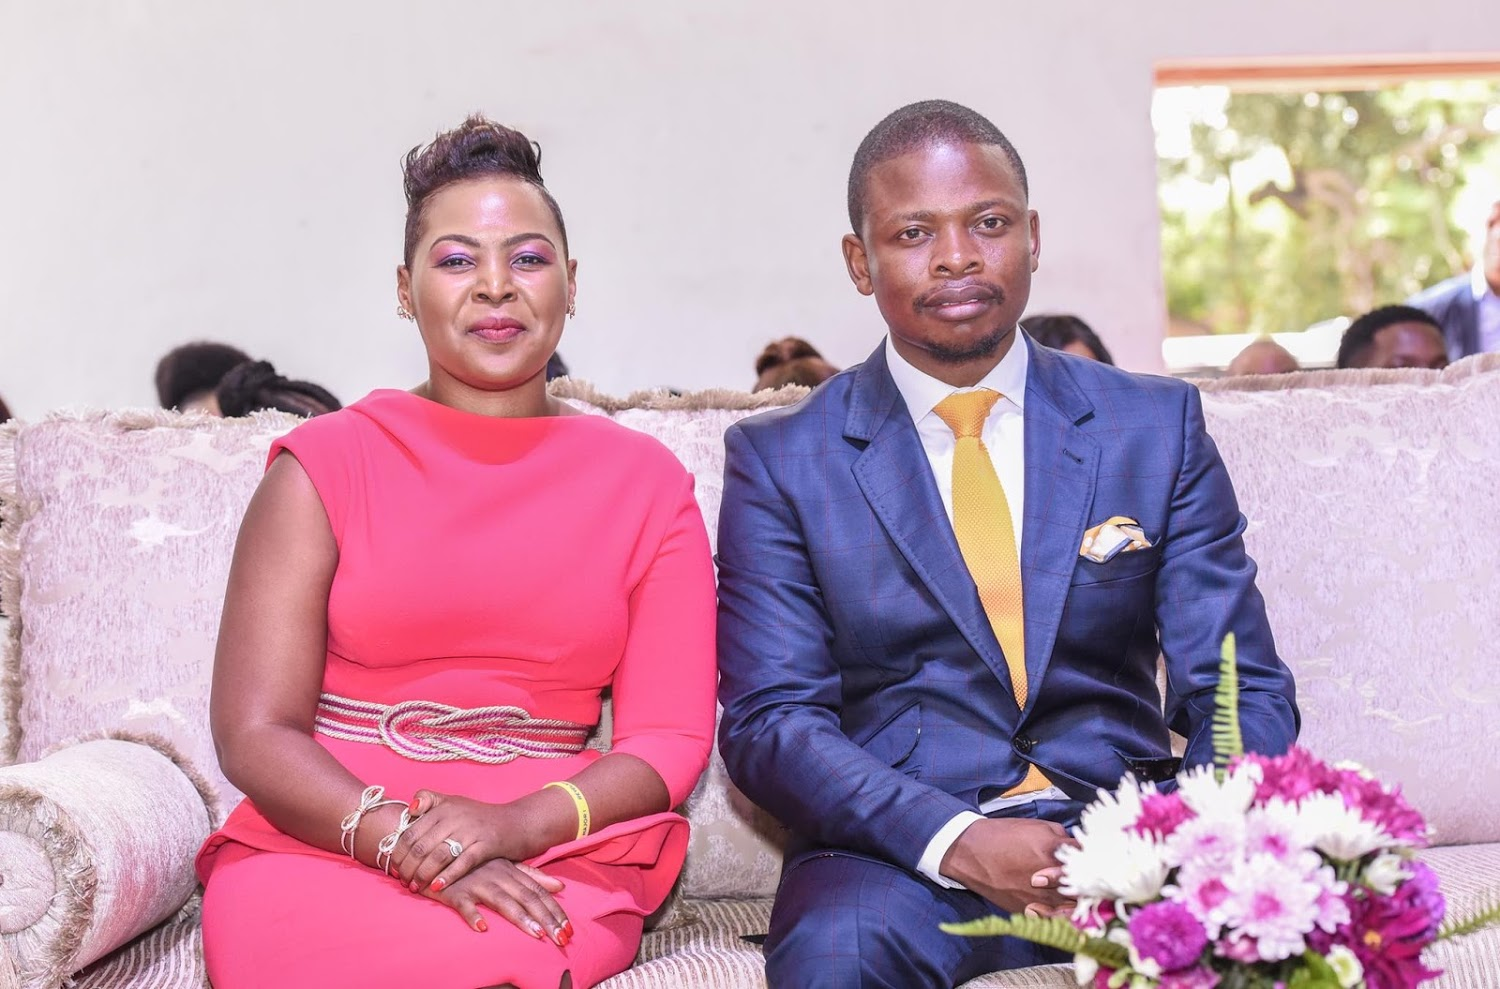 Prophet Bushiri And His Wife Mary To Be Banished From SA